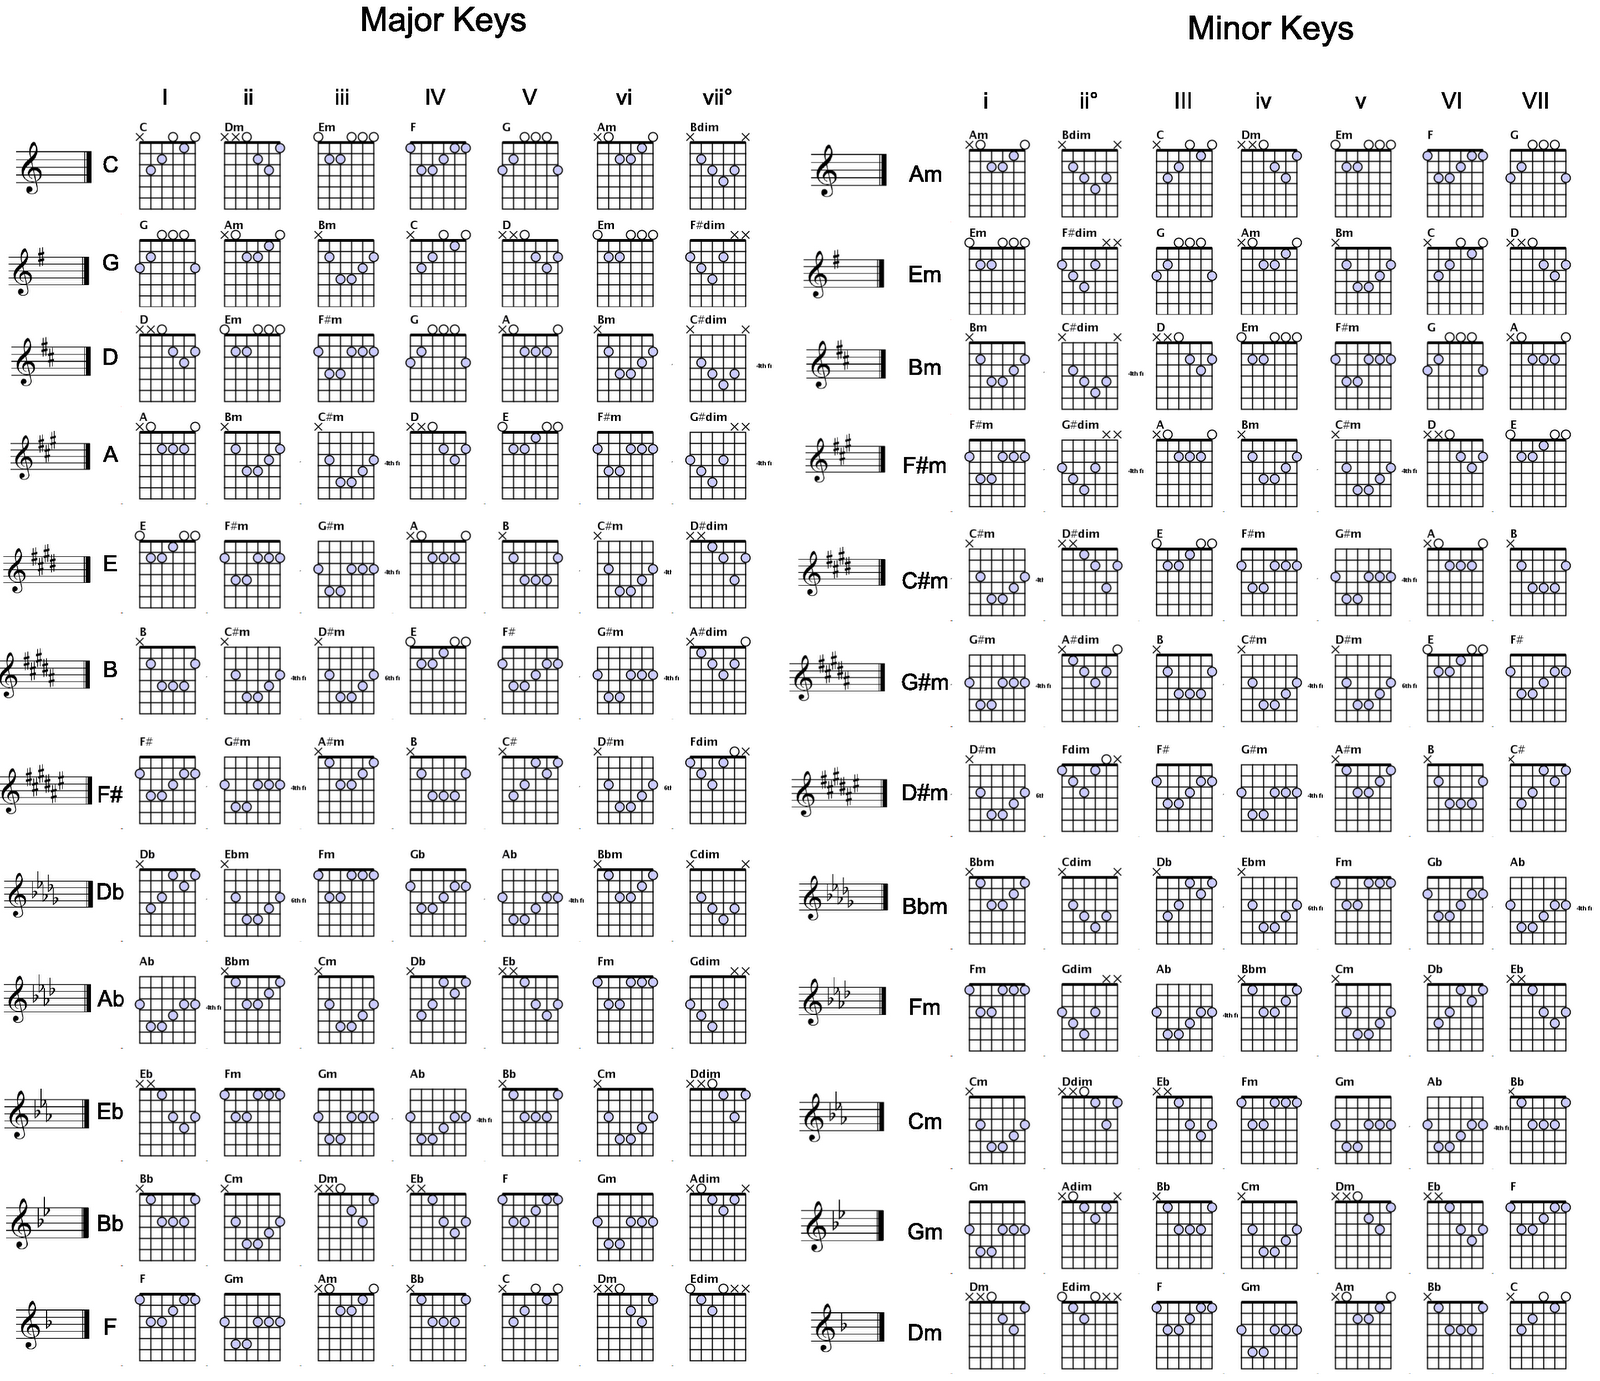 http://www.music-for-music-teachers.com/images/key-of-e-chords-guitar-fixed.png